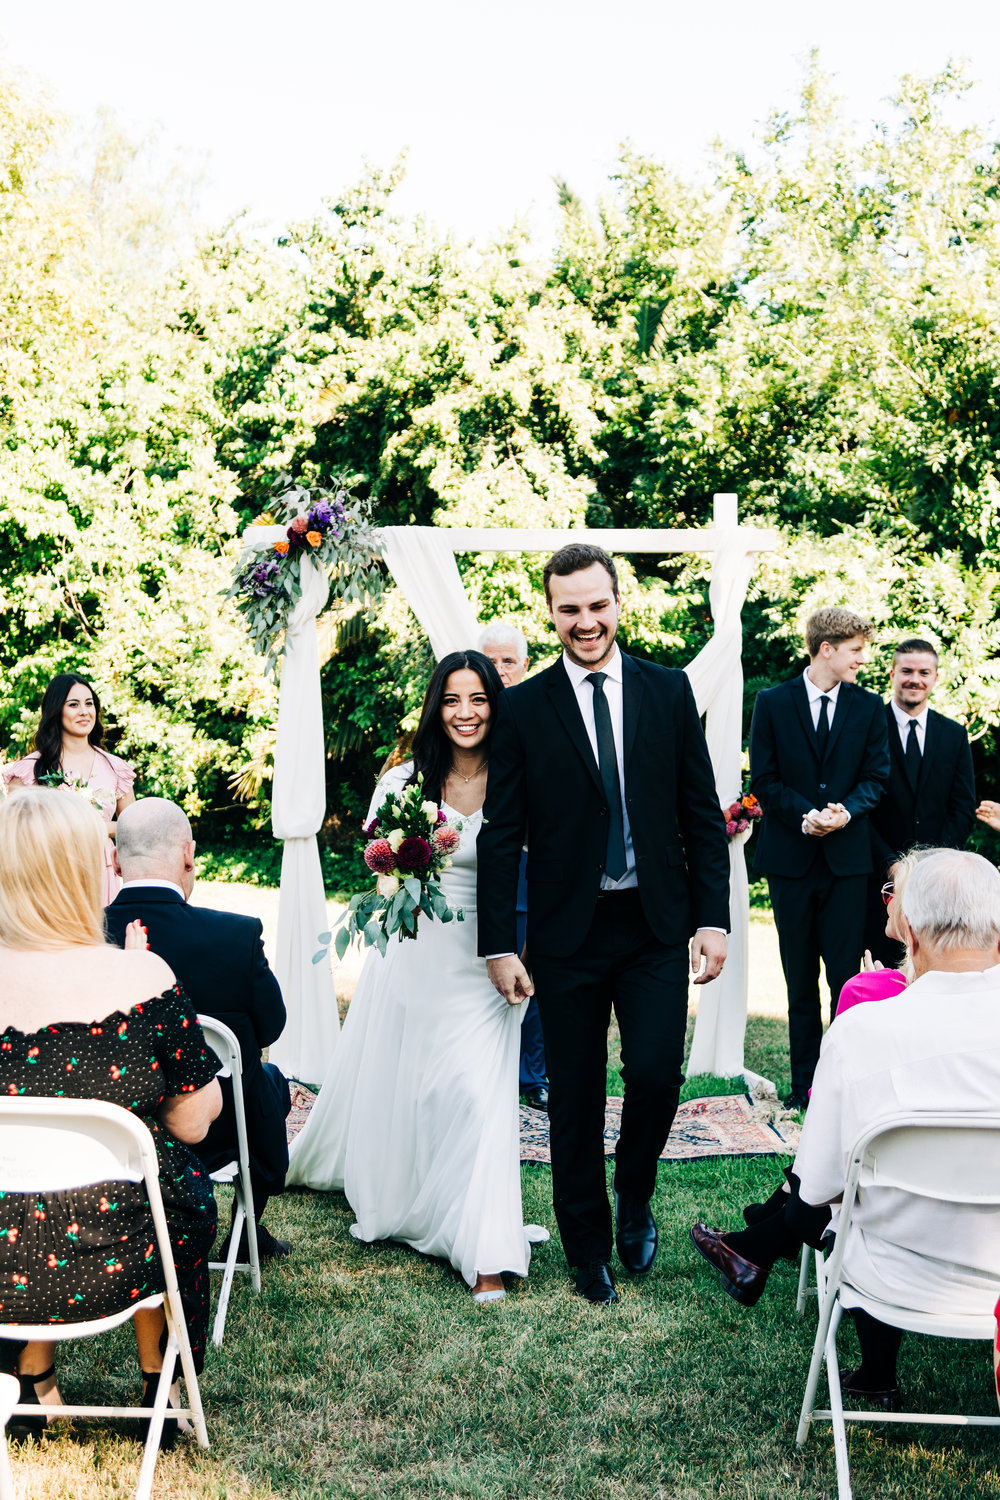 Katy&Nathan-WeddingEdits_247.jpg